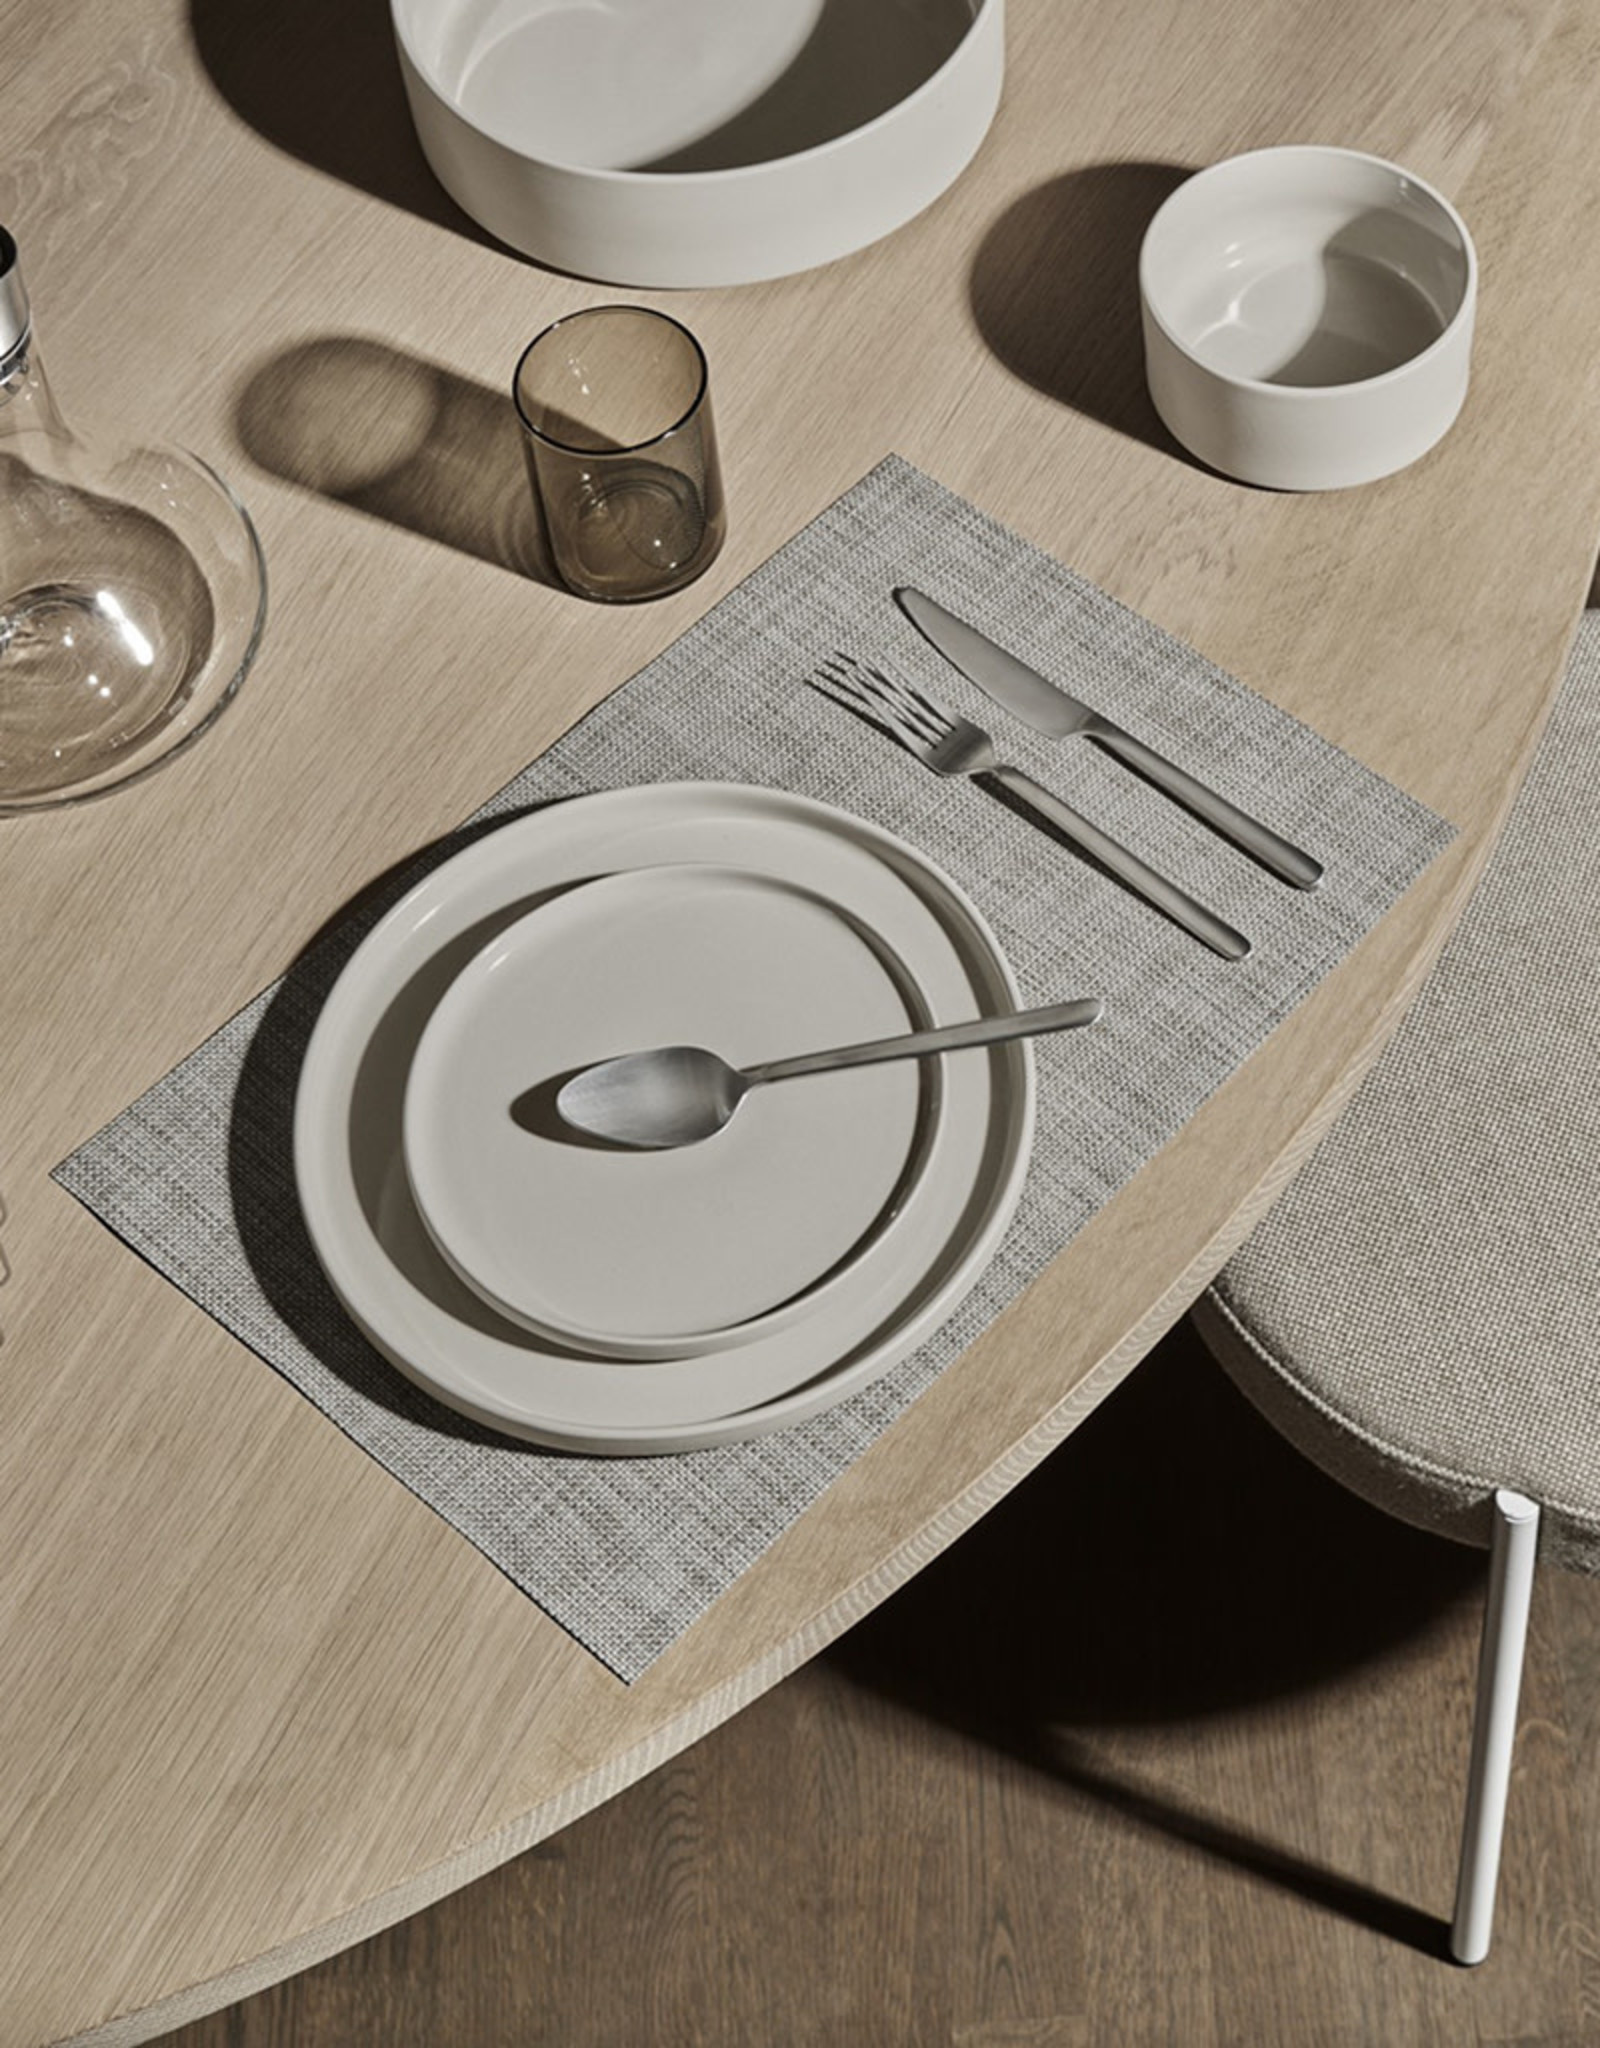 BLOMUS BLOMUS SITO Placemat Magnet/Micro Chip